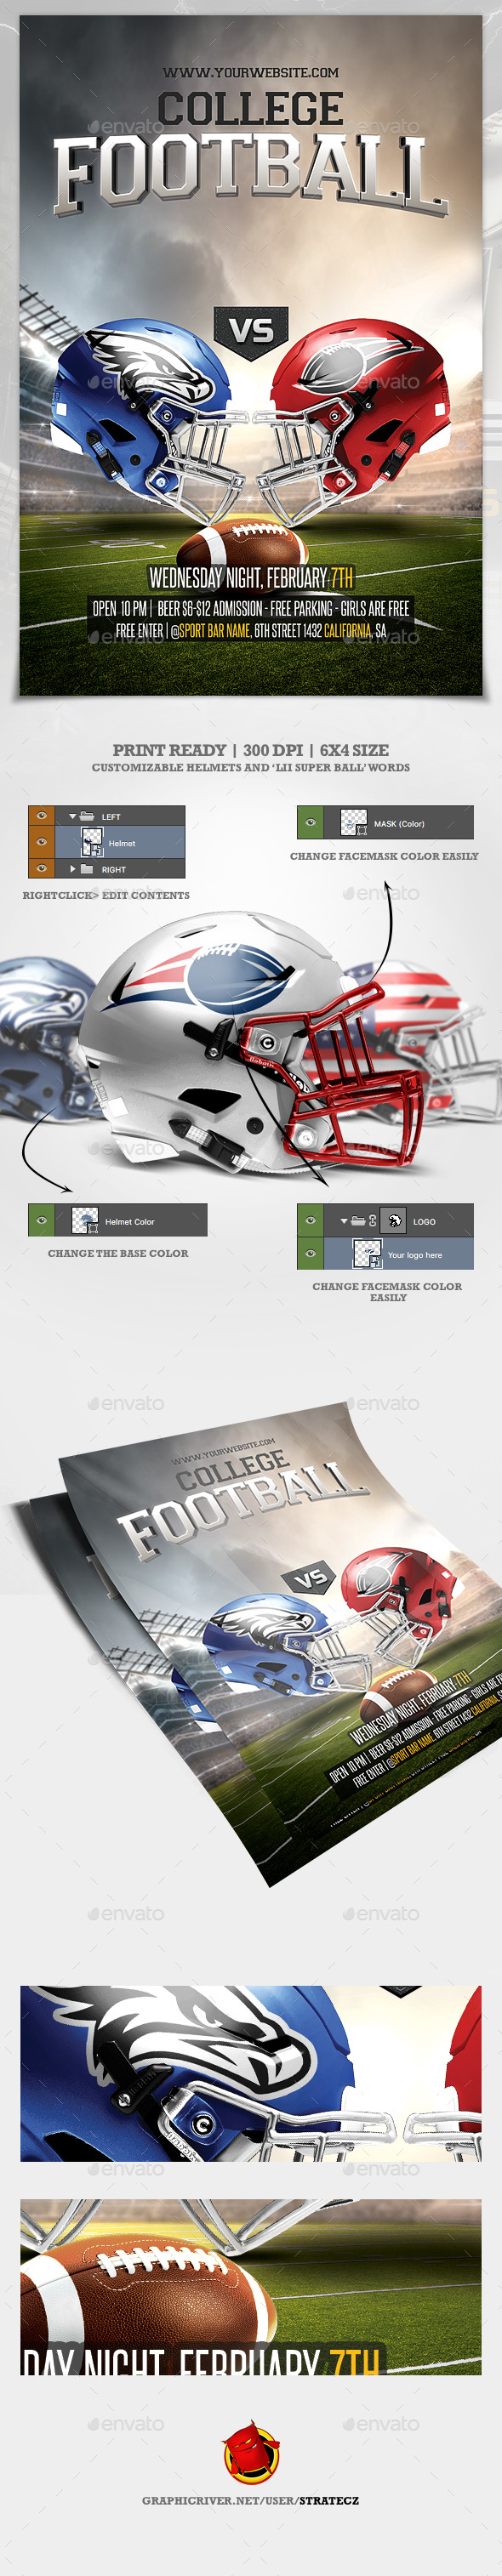 College Football Flyer / Sunday College Football Flyer - Print Templates